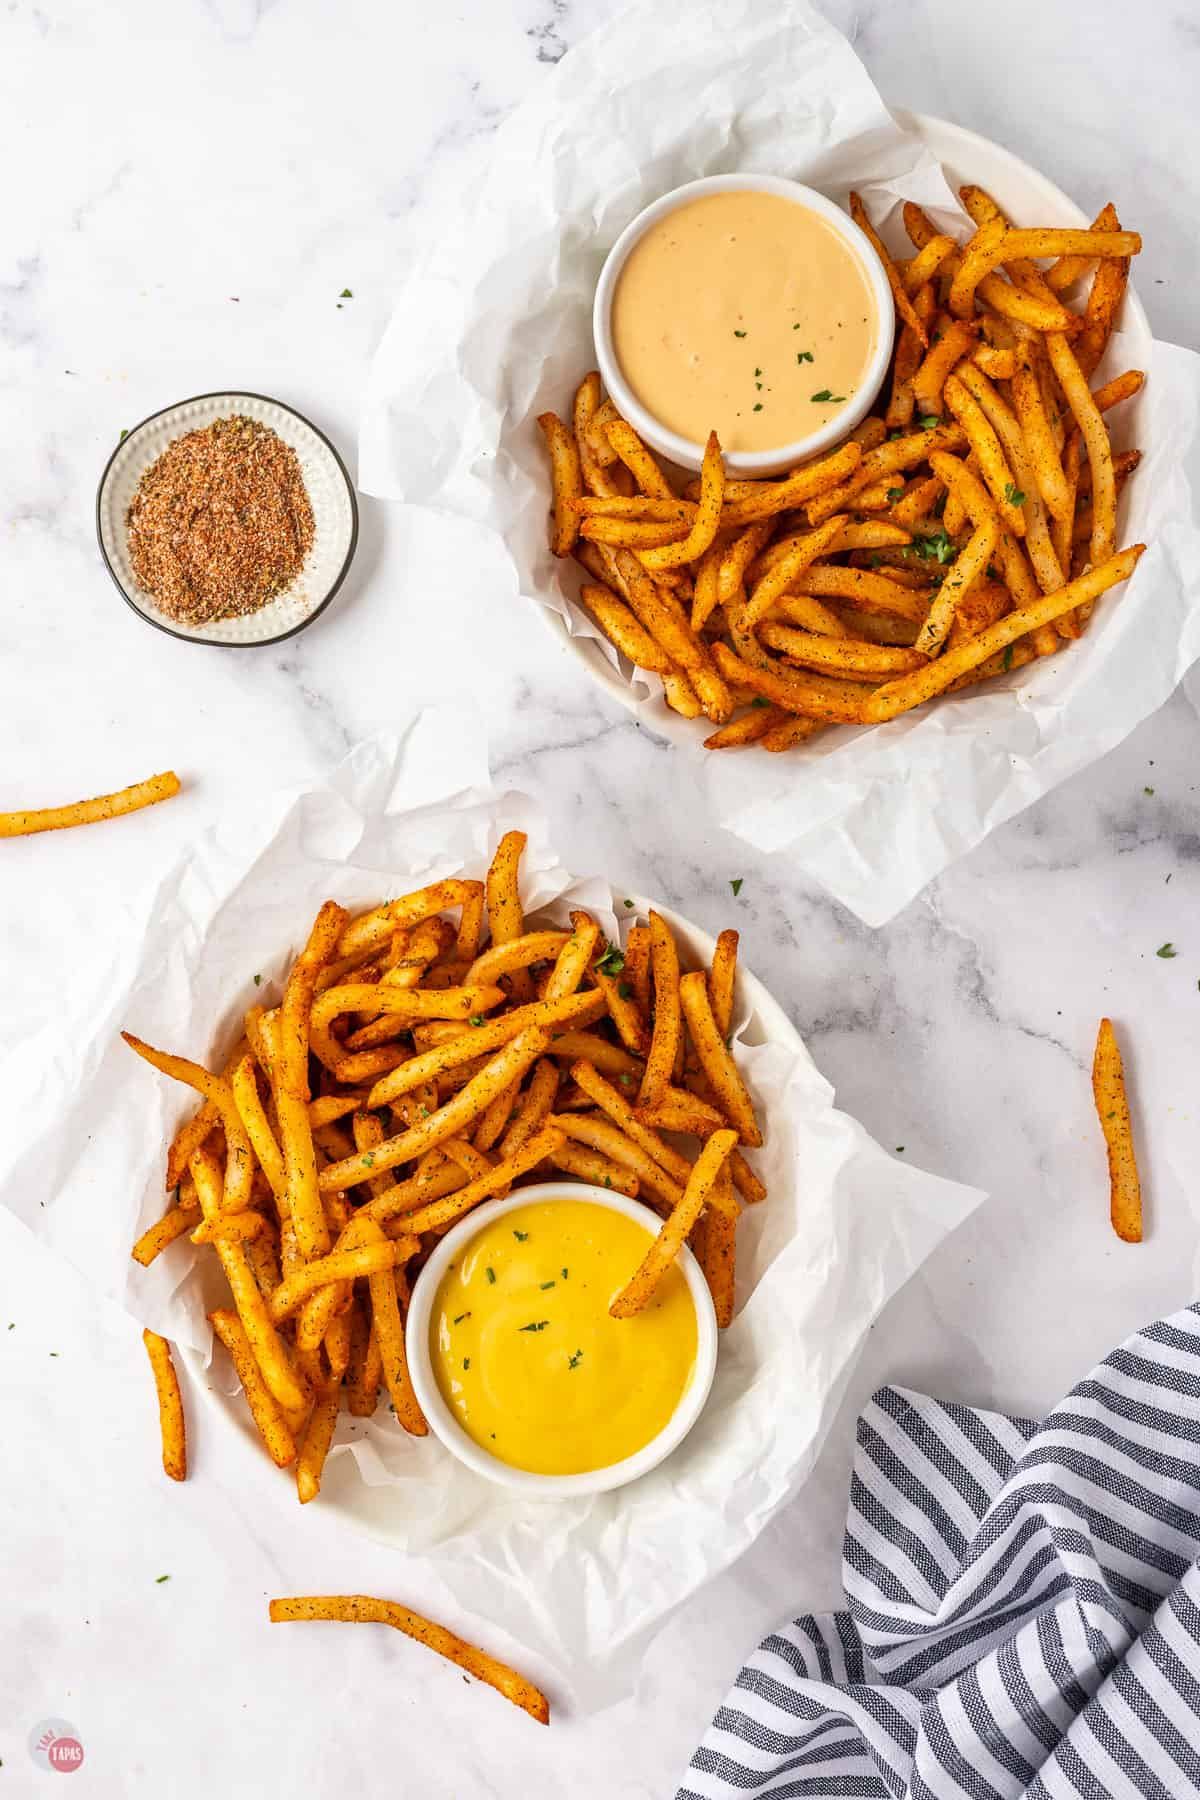 two bowls of french fries